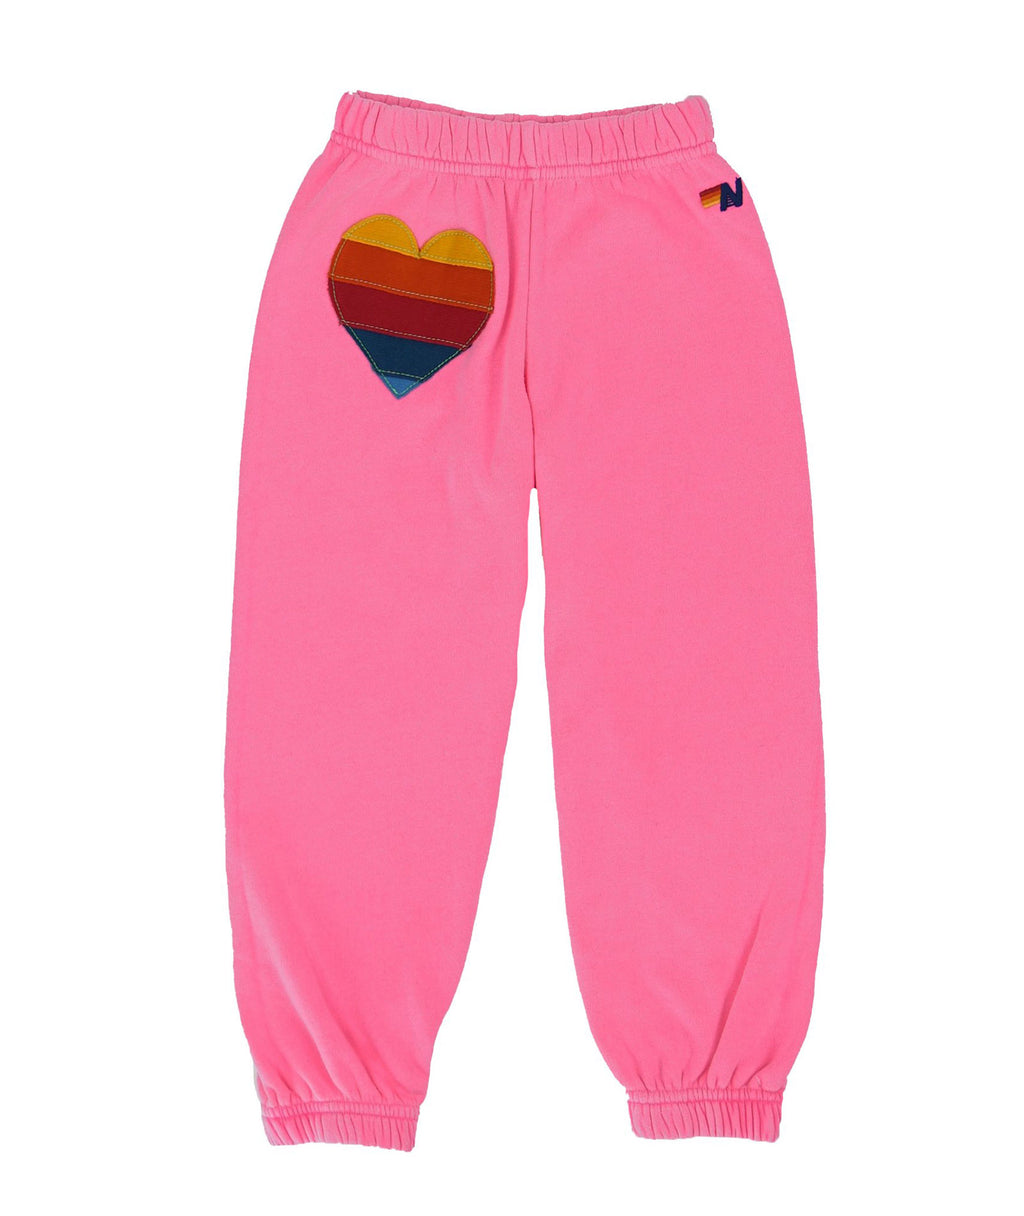 Aviator Nation Girls Hot Pink Heart Sweatpants - Frankie's on the Park